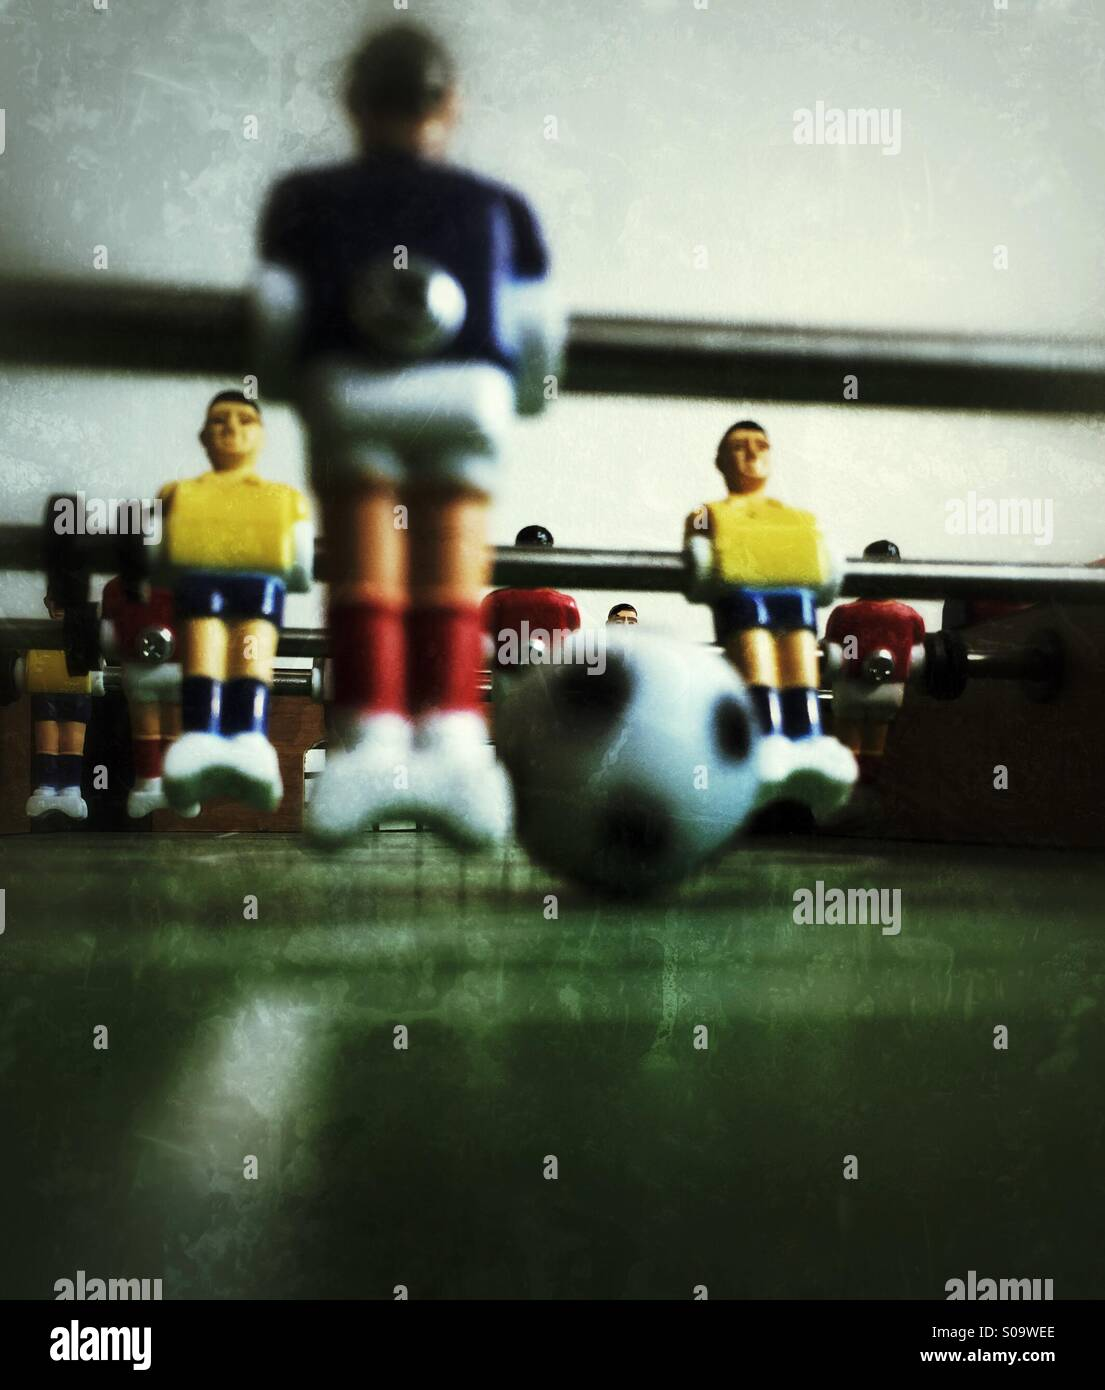 Table football/soccer game photographed from game field perspective. - Stock Image